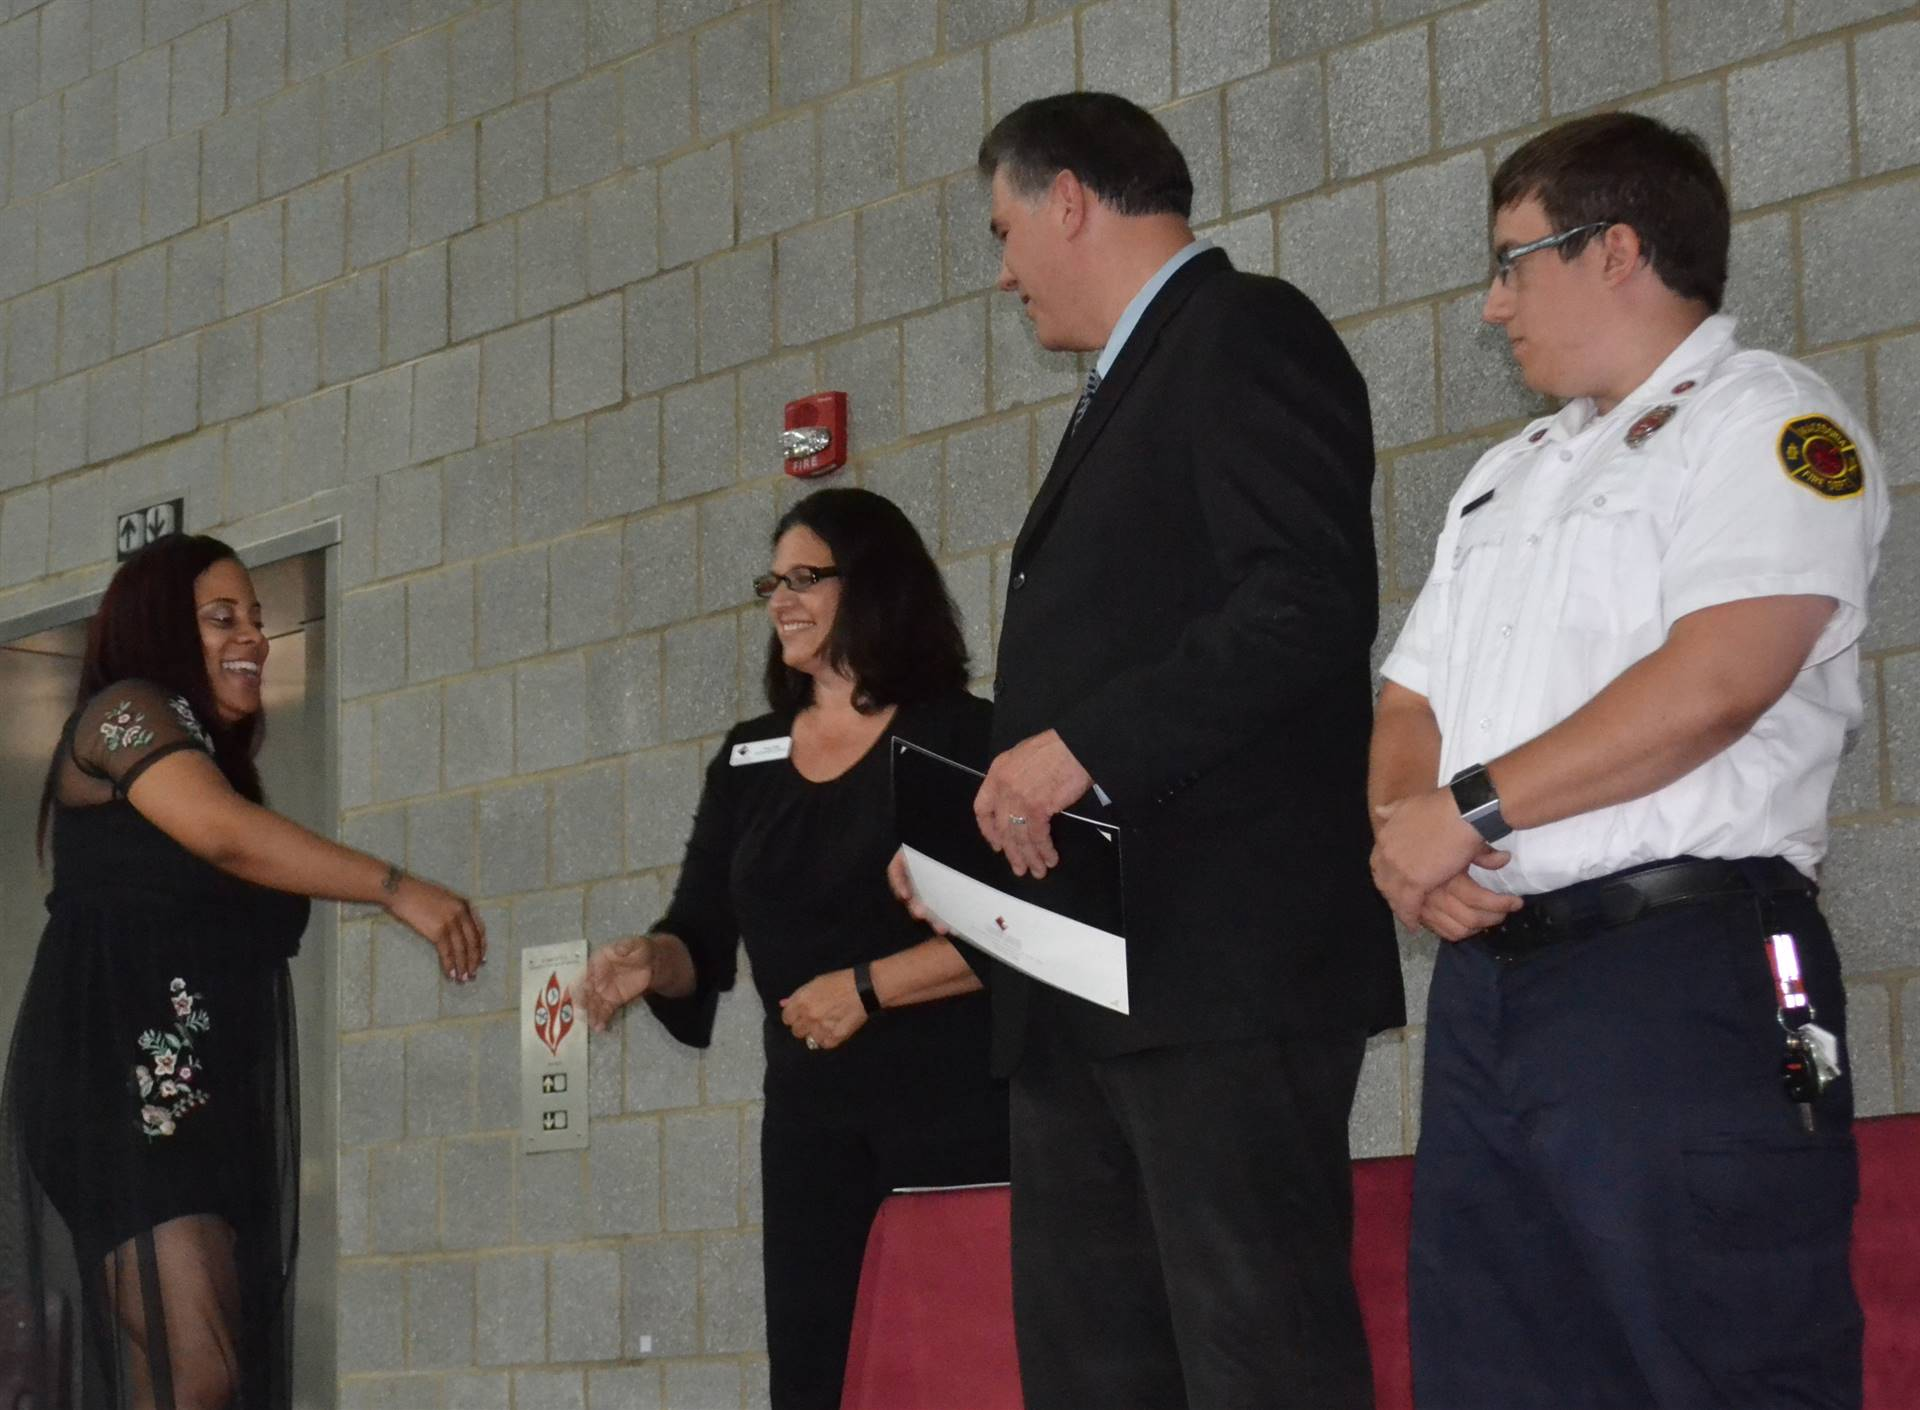 EMT student receiving certificate